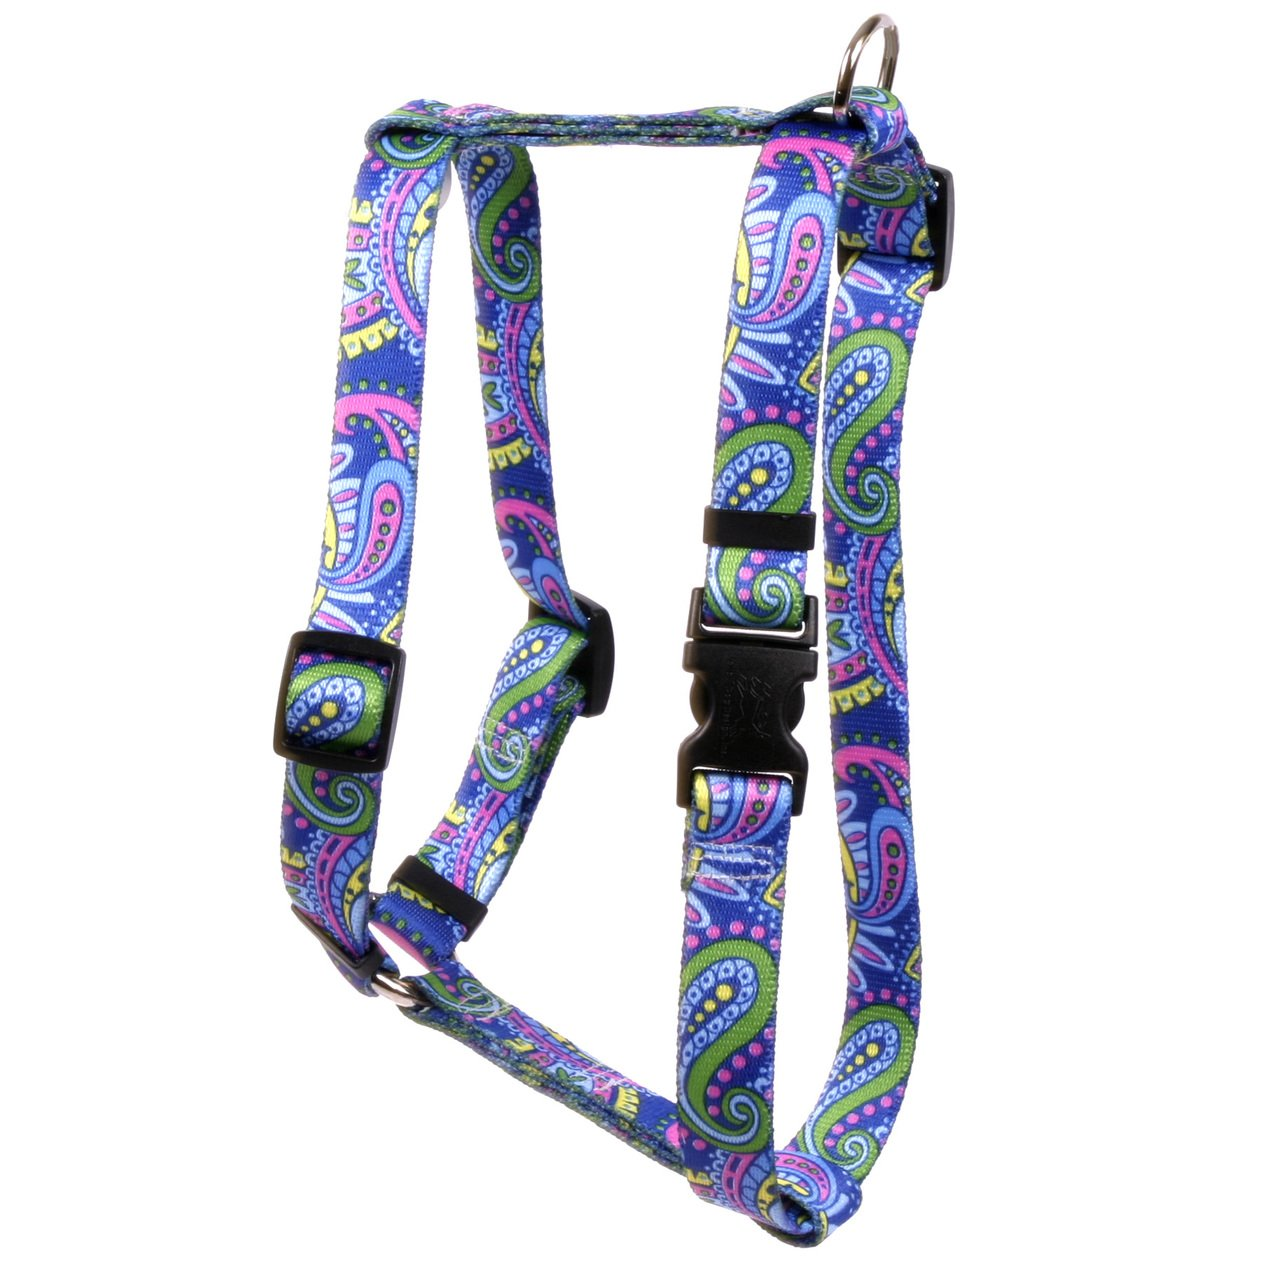 Yellow Dog Design Paisley Power Roman Style H Dog Harness, Large-1'' Wide and fits Chest of 20 to 28''